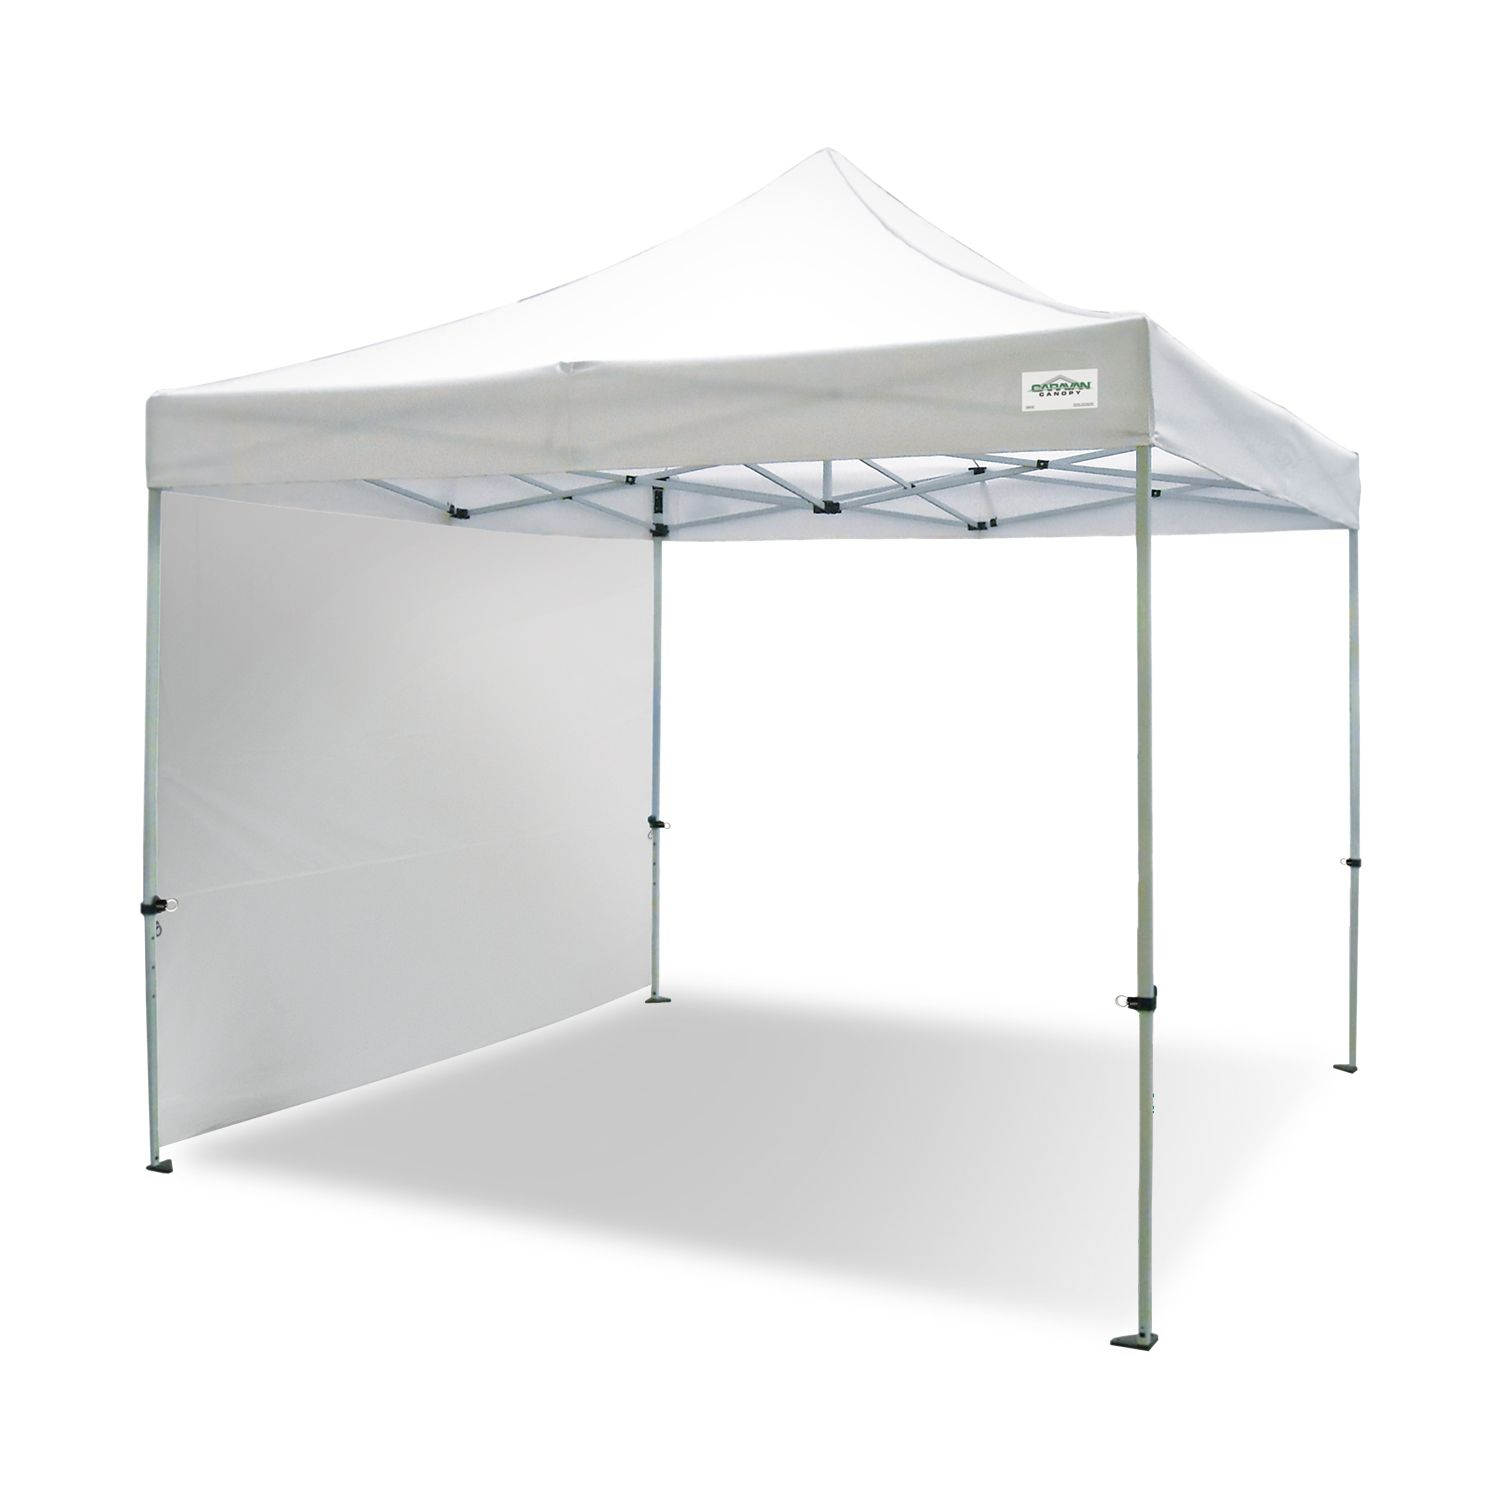 The TitanShade® is a light-duty steel commercial grade instant canopy. The  sc 1 st  Pinterest & The TitanShade® is a light-duty steel commercial grade instant ...